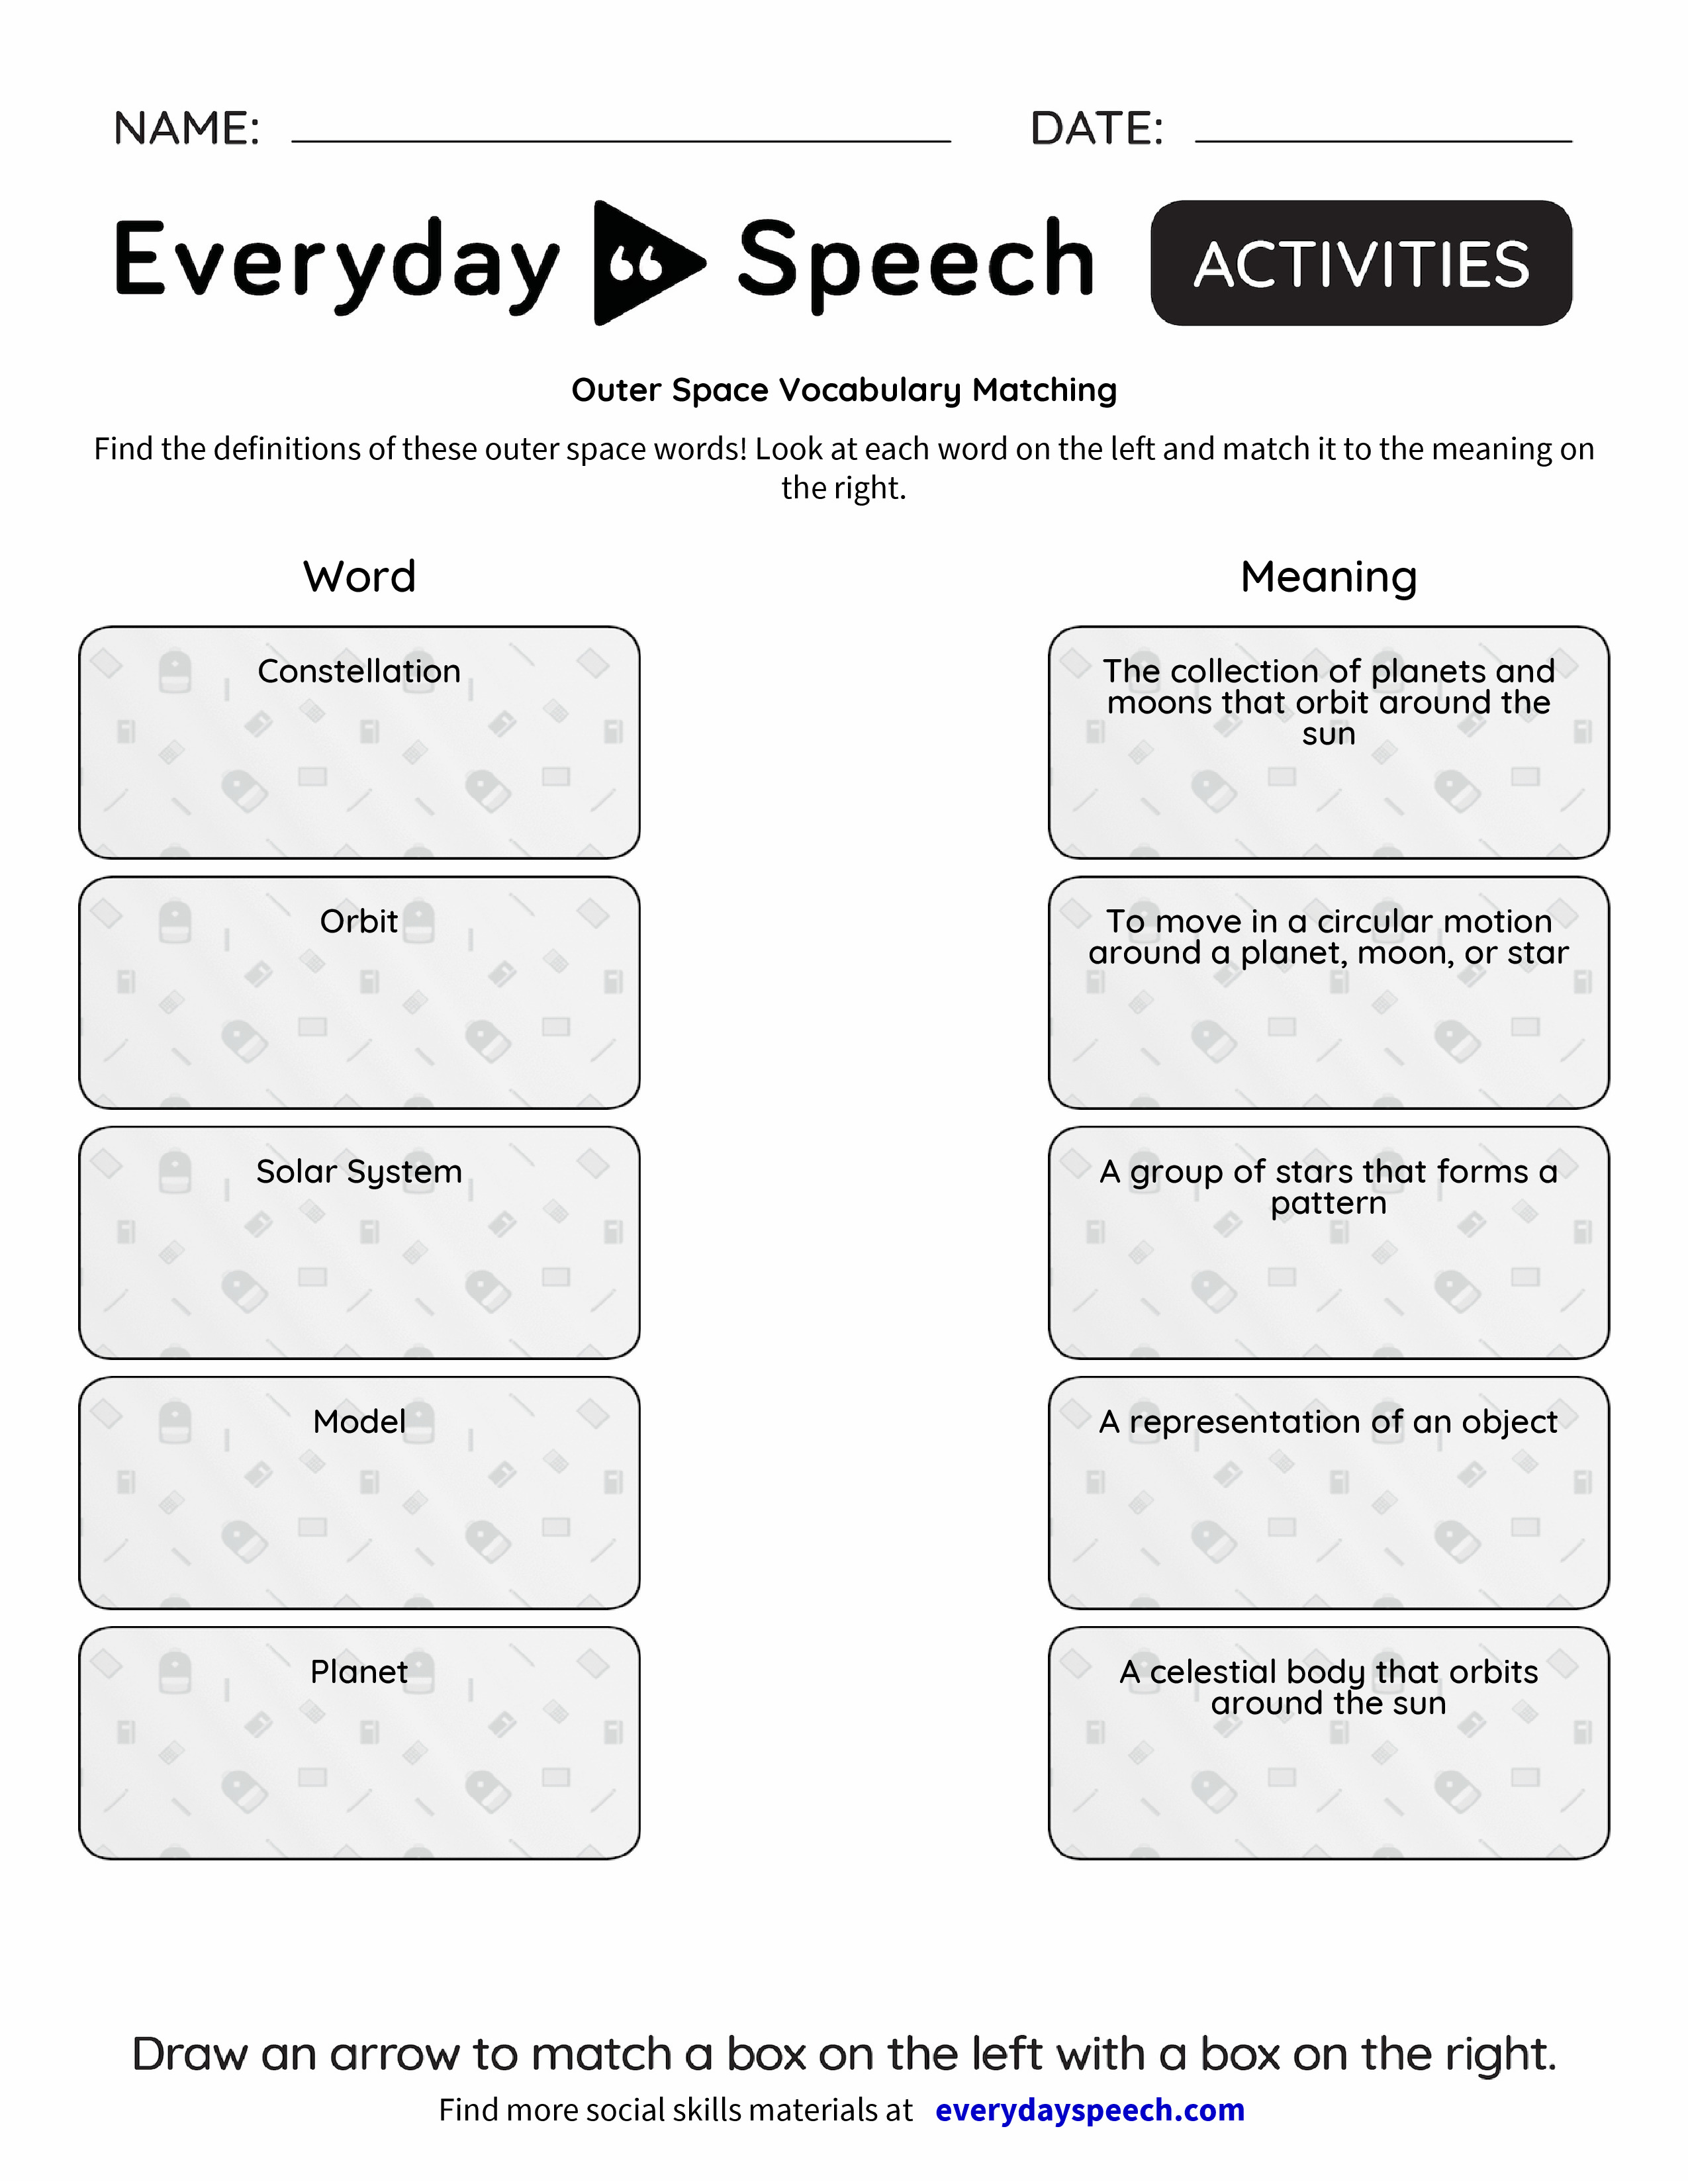 Worksheets Matching Worksheet Maker outer space vocabulary matching everyday speech matching